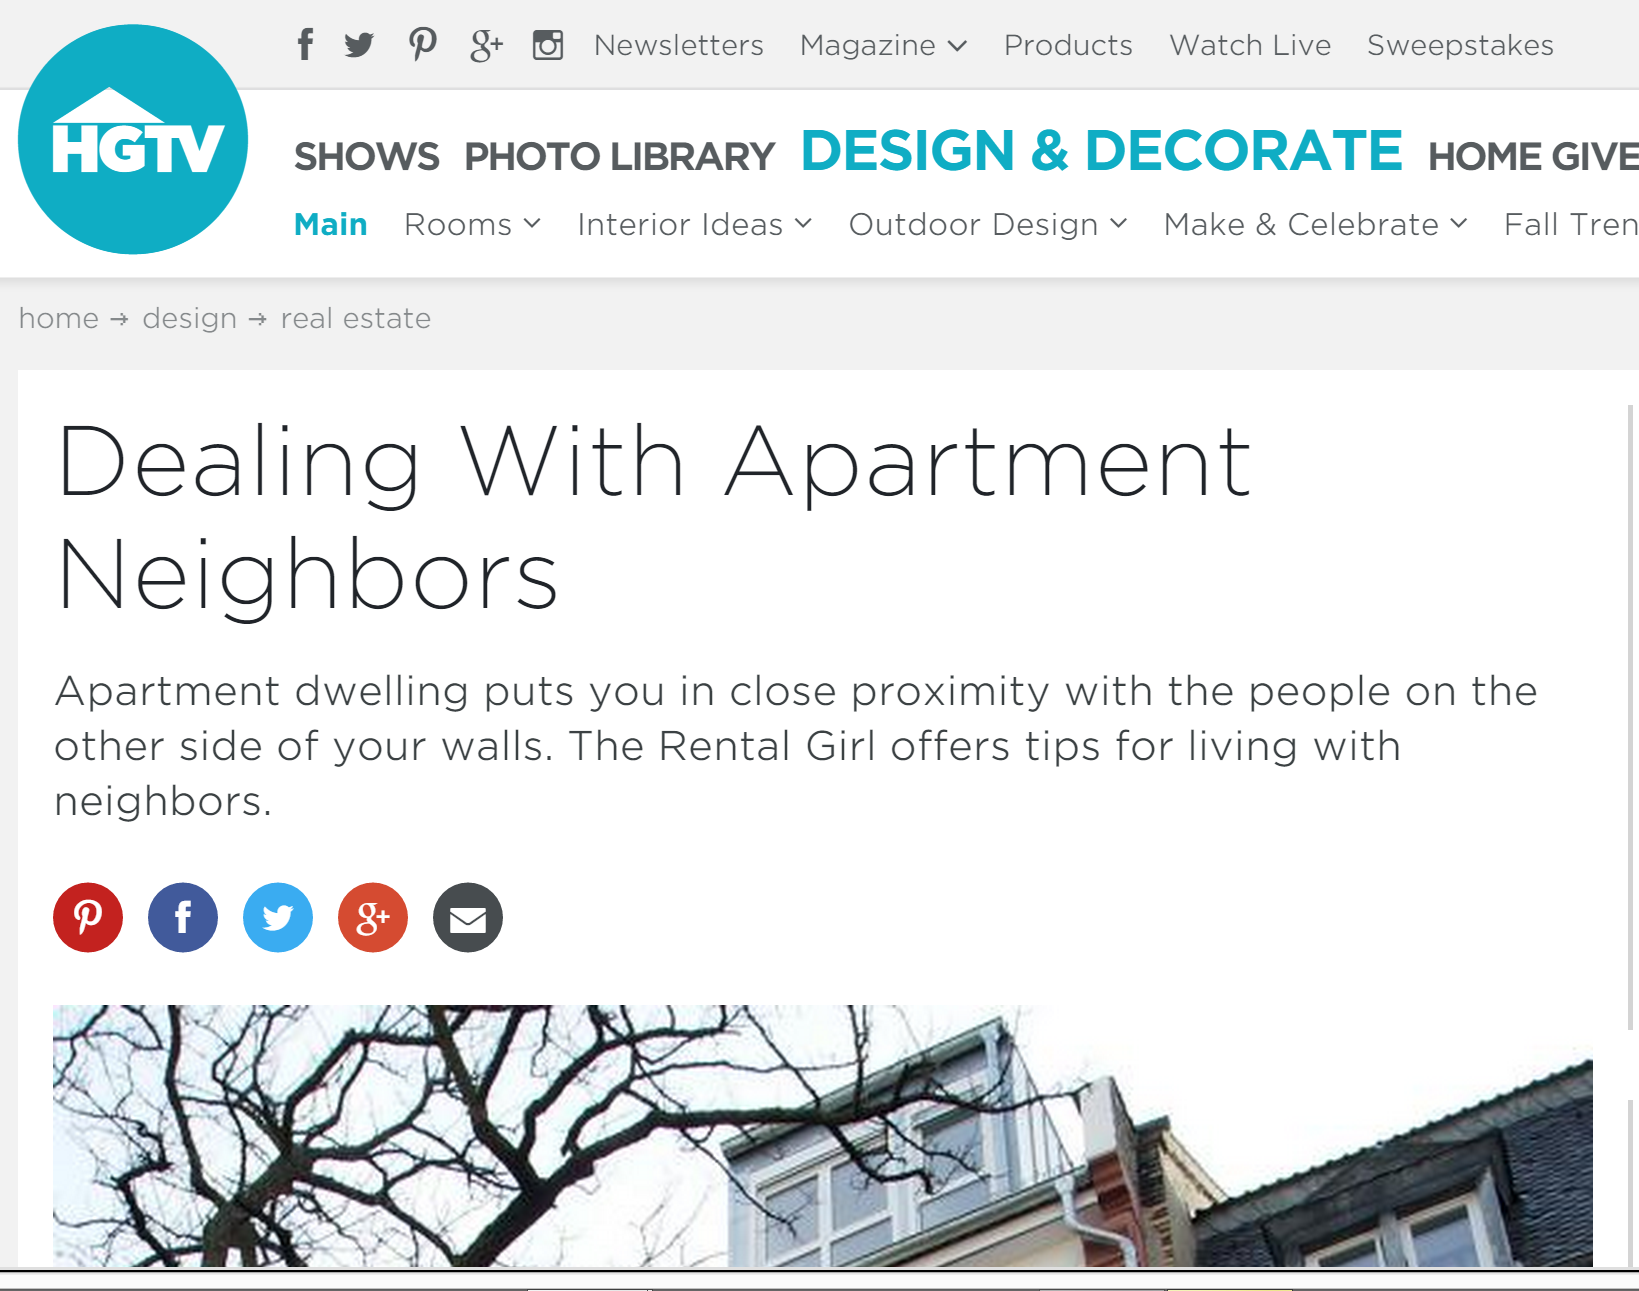 HGTV Dealing with Apartment Neighbors